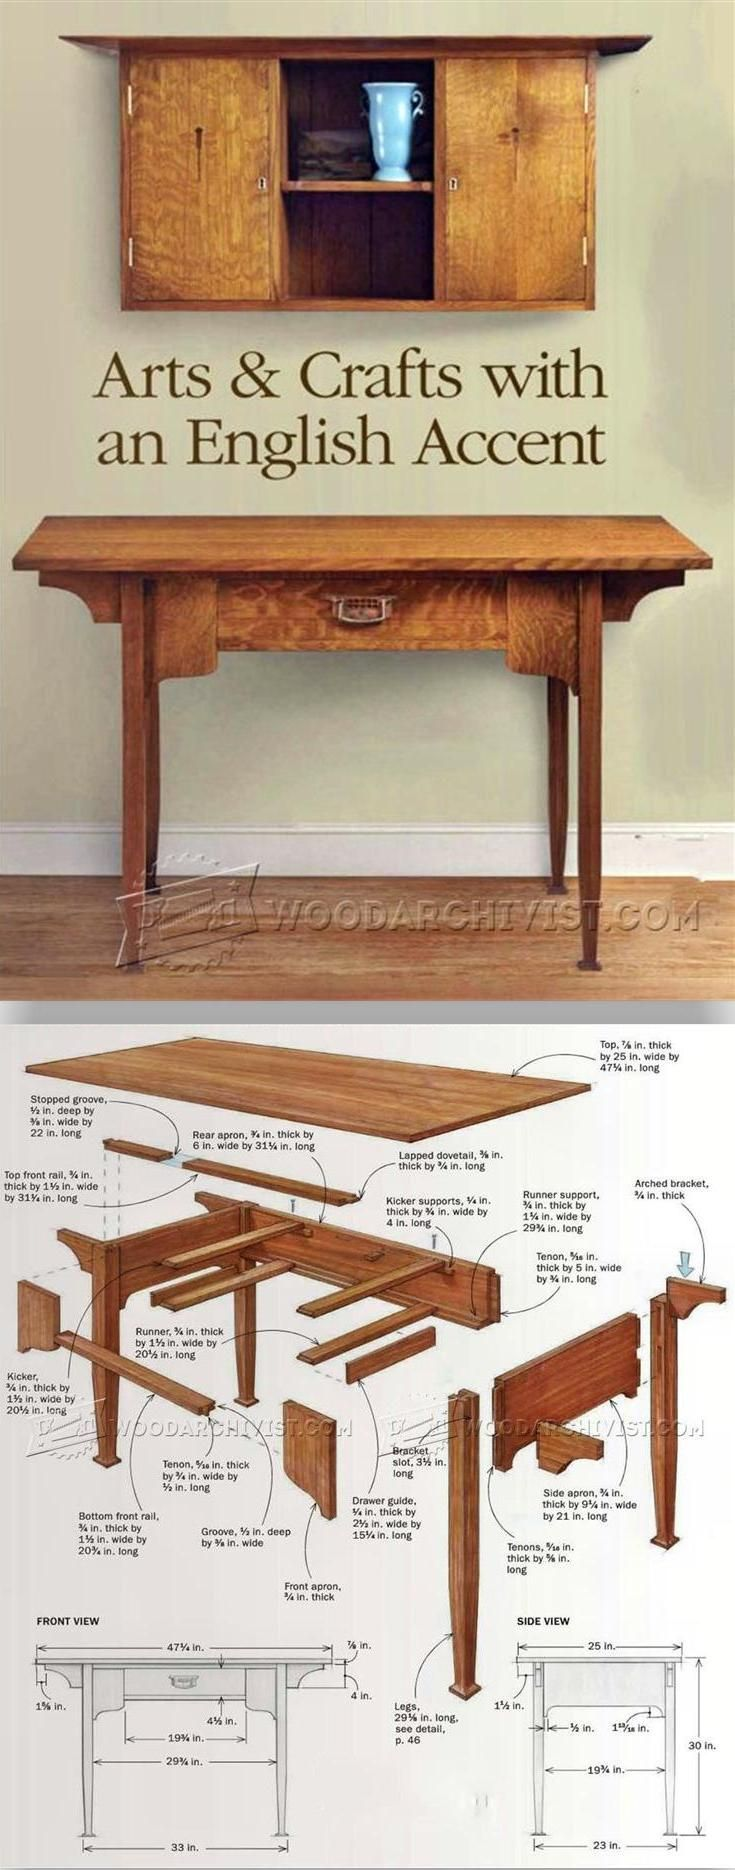 Arts and Crafts Desk Plans - Furniture Plans and Projects | WoodArchivist.com